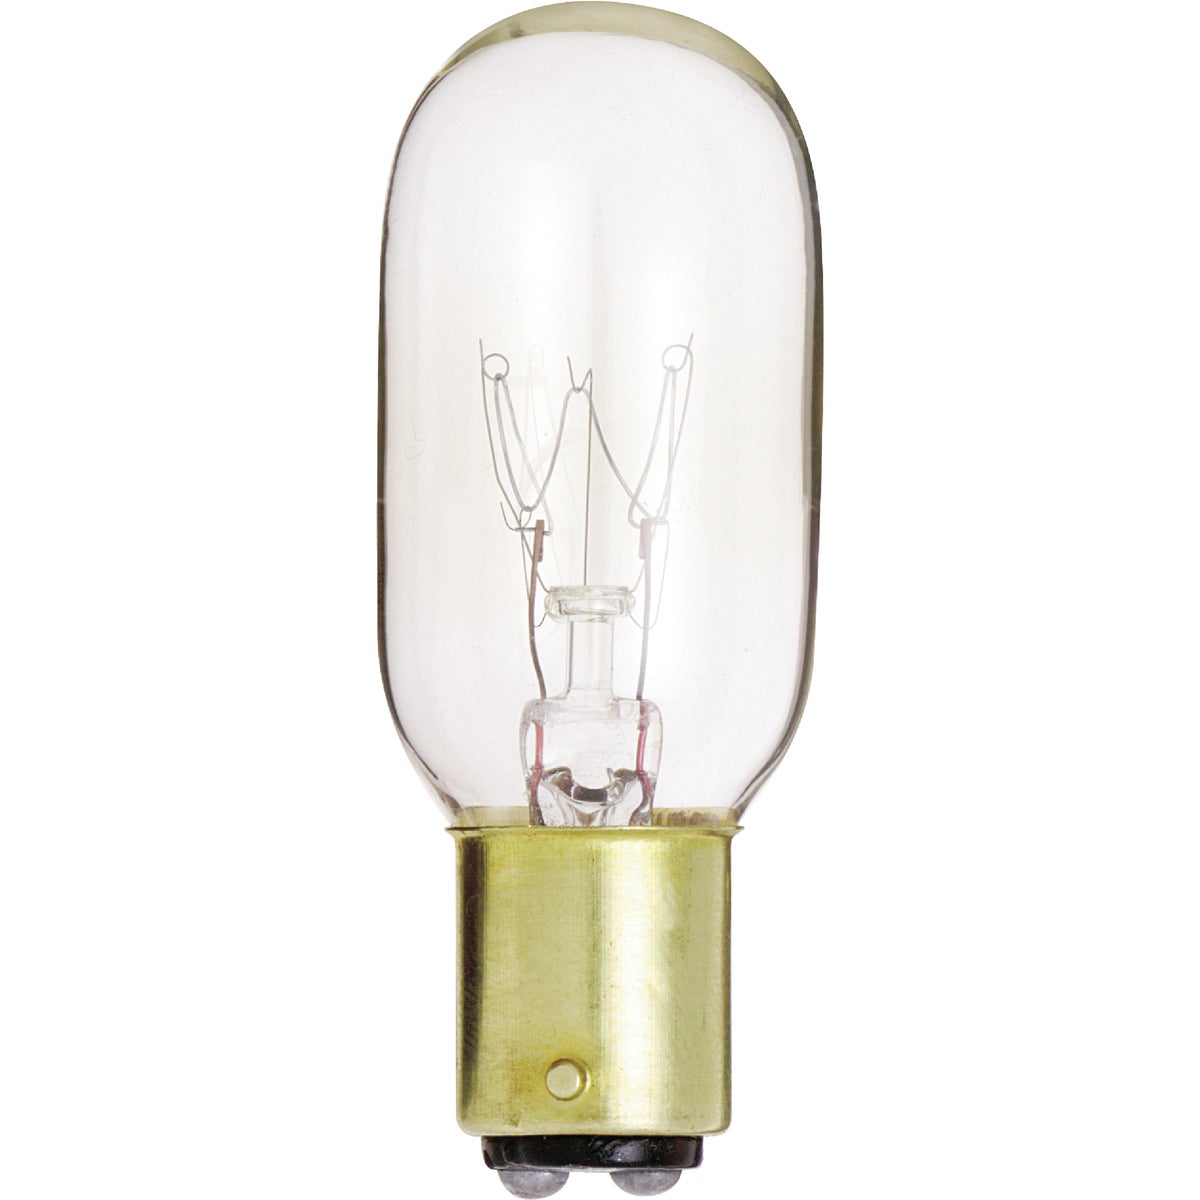 15W CLR APPLIANCE BULB - 35154 by G E Lighting